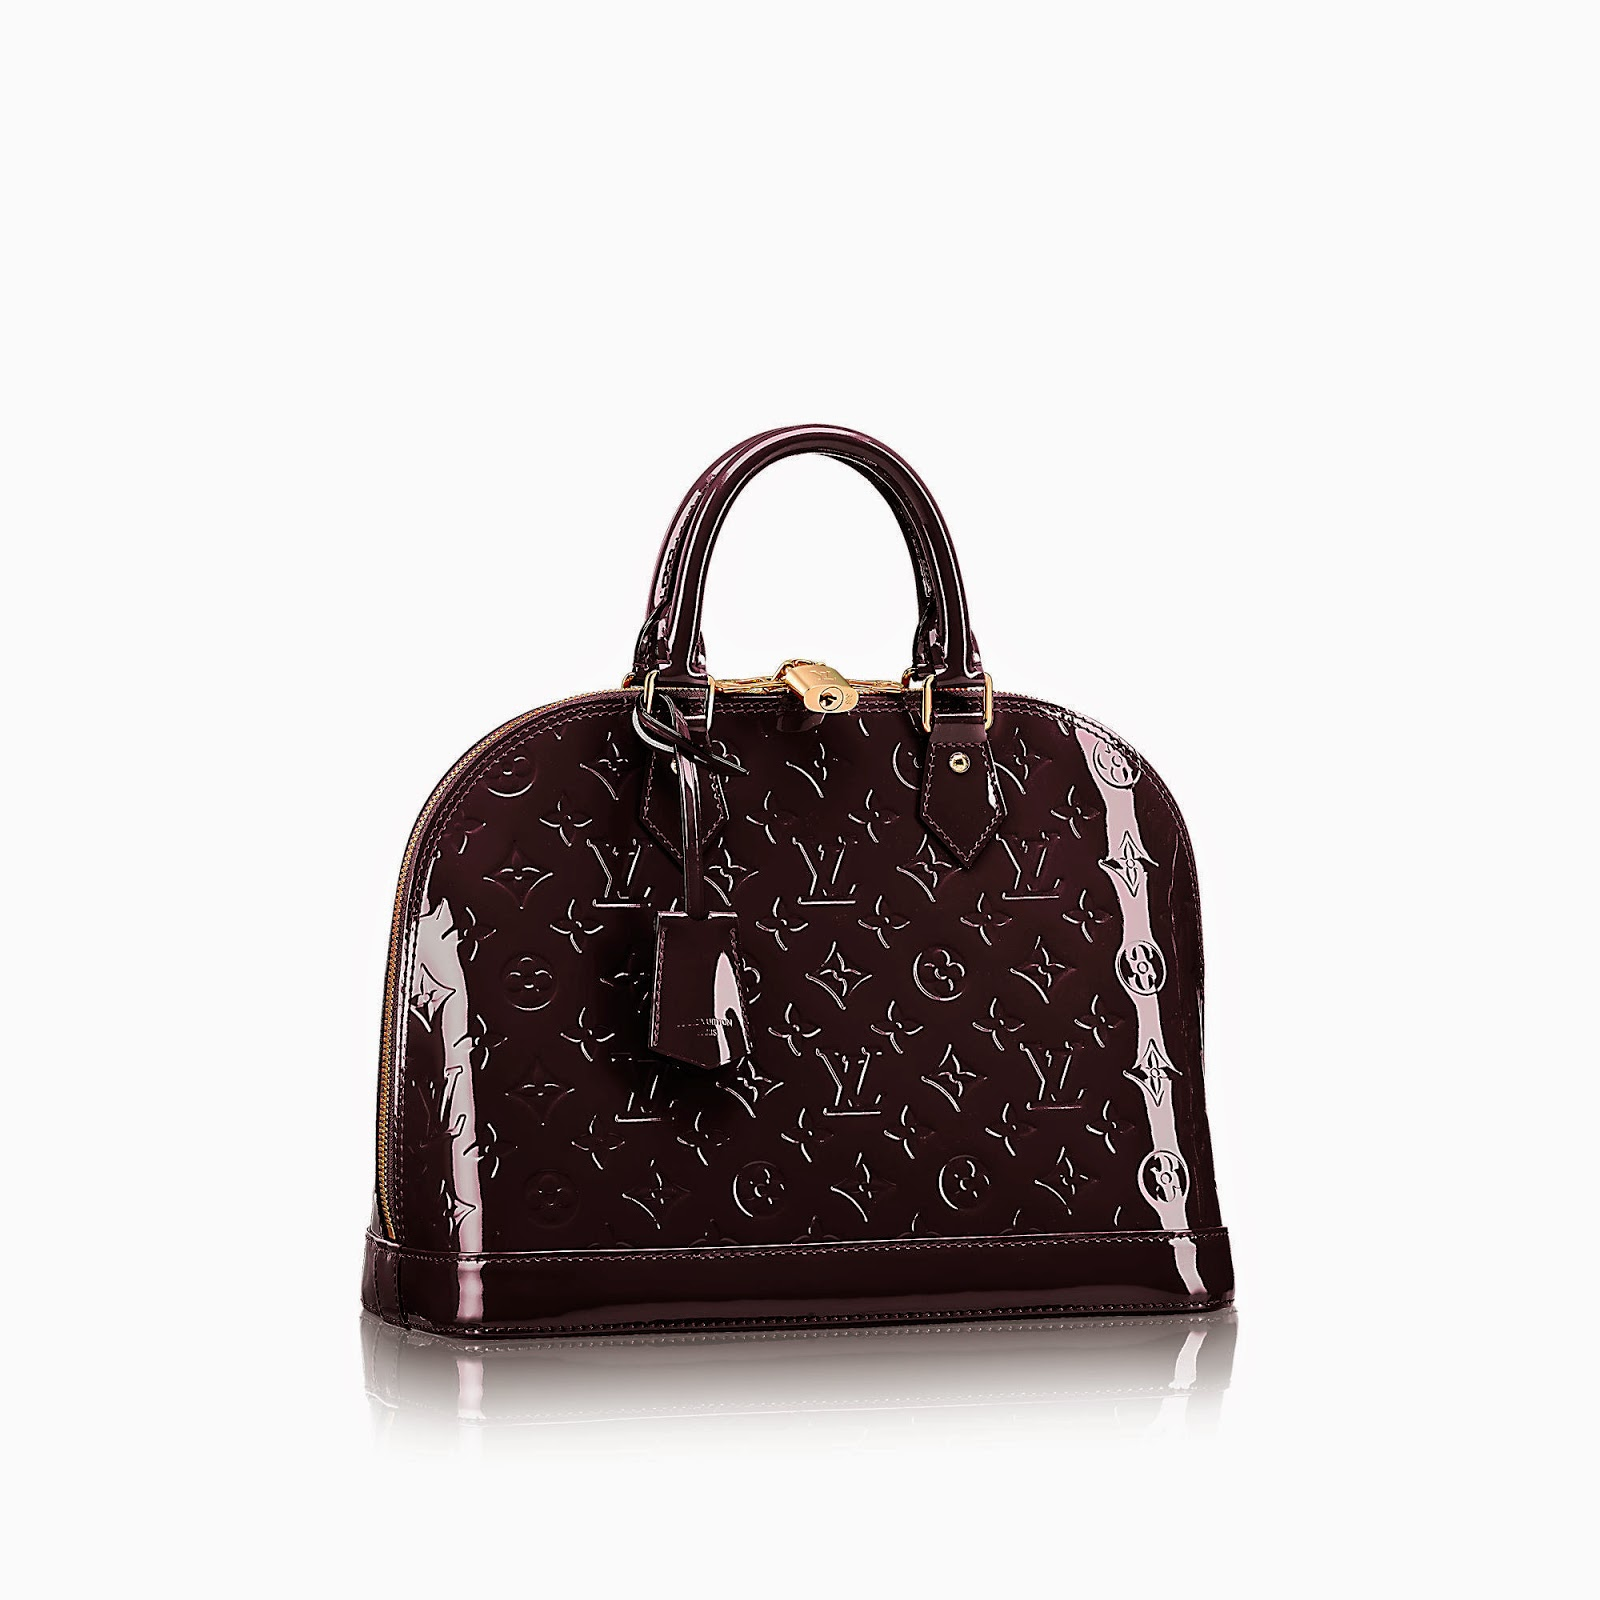 Stylish Designs of Louis Vuitton Bags